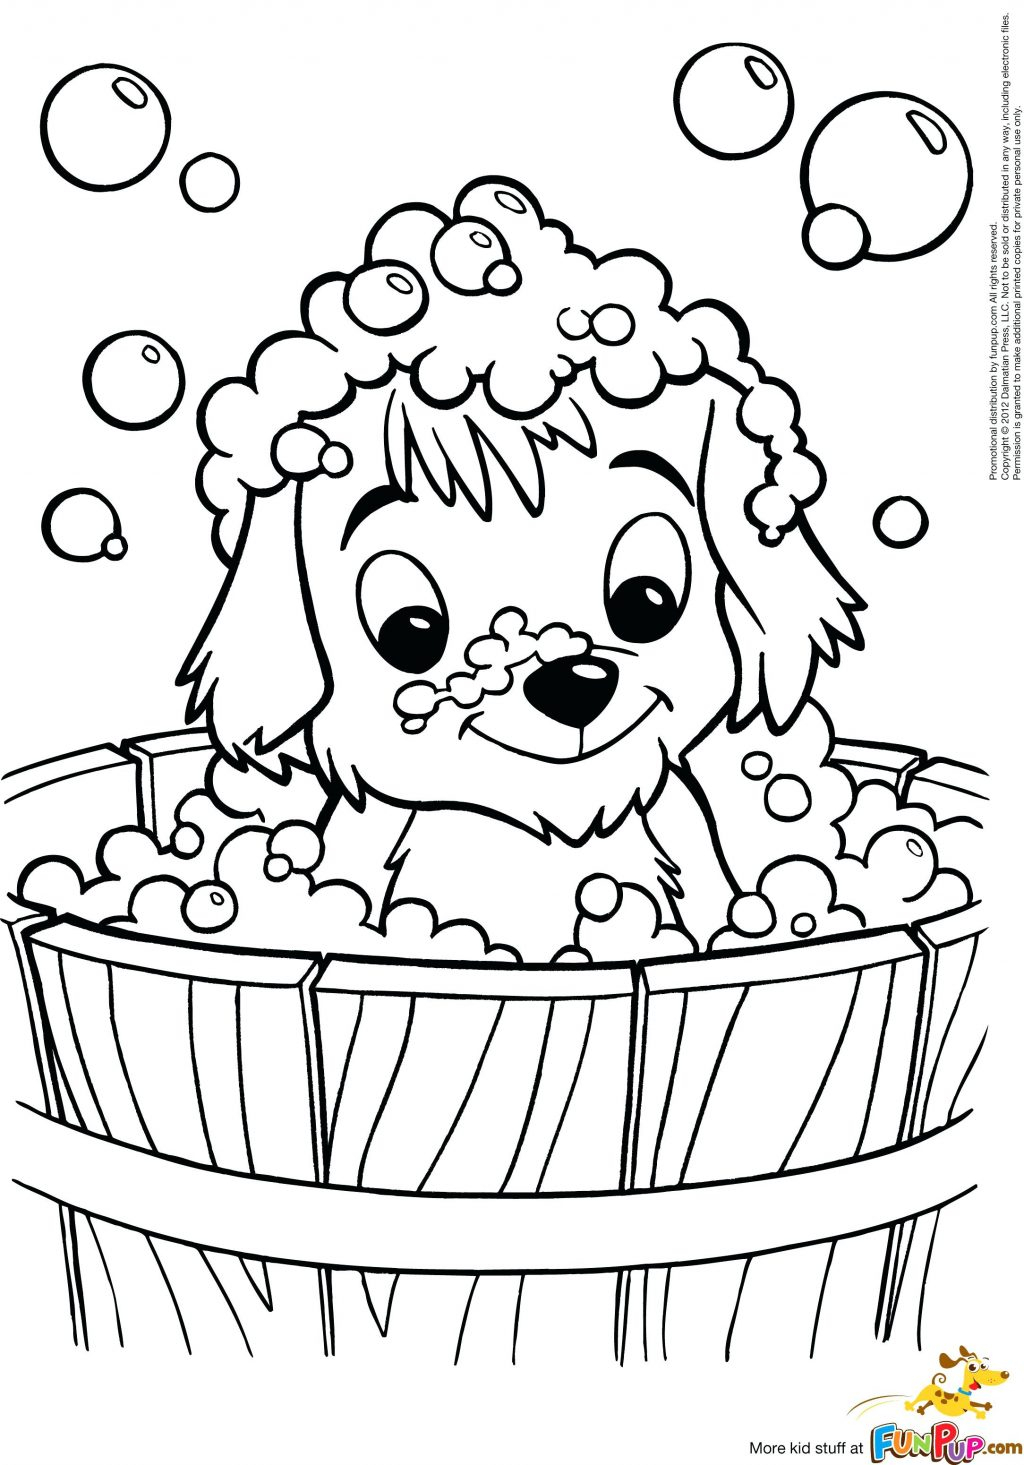 Little Puppy Coloring Pages Coloring Page Best Kitten And Puppy Coloring Pages For Kids Cute